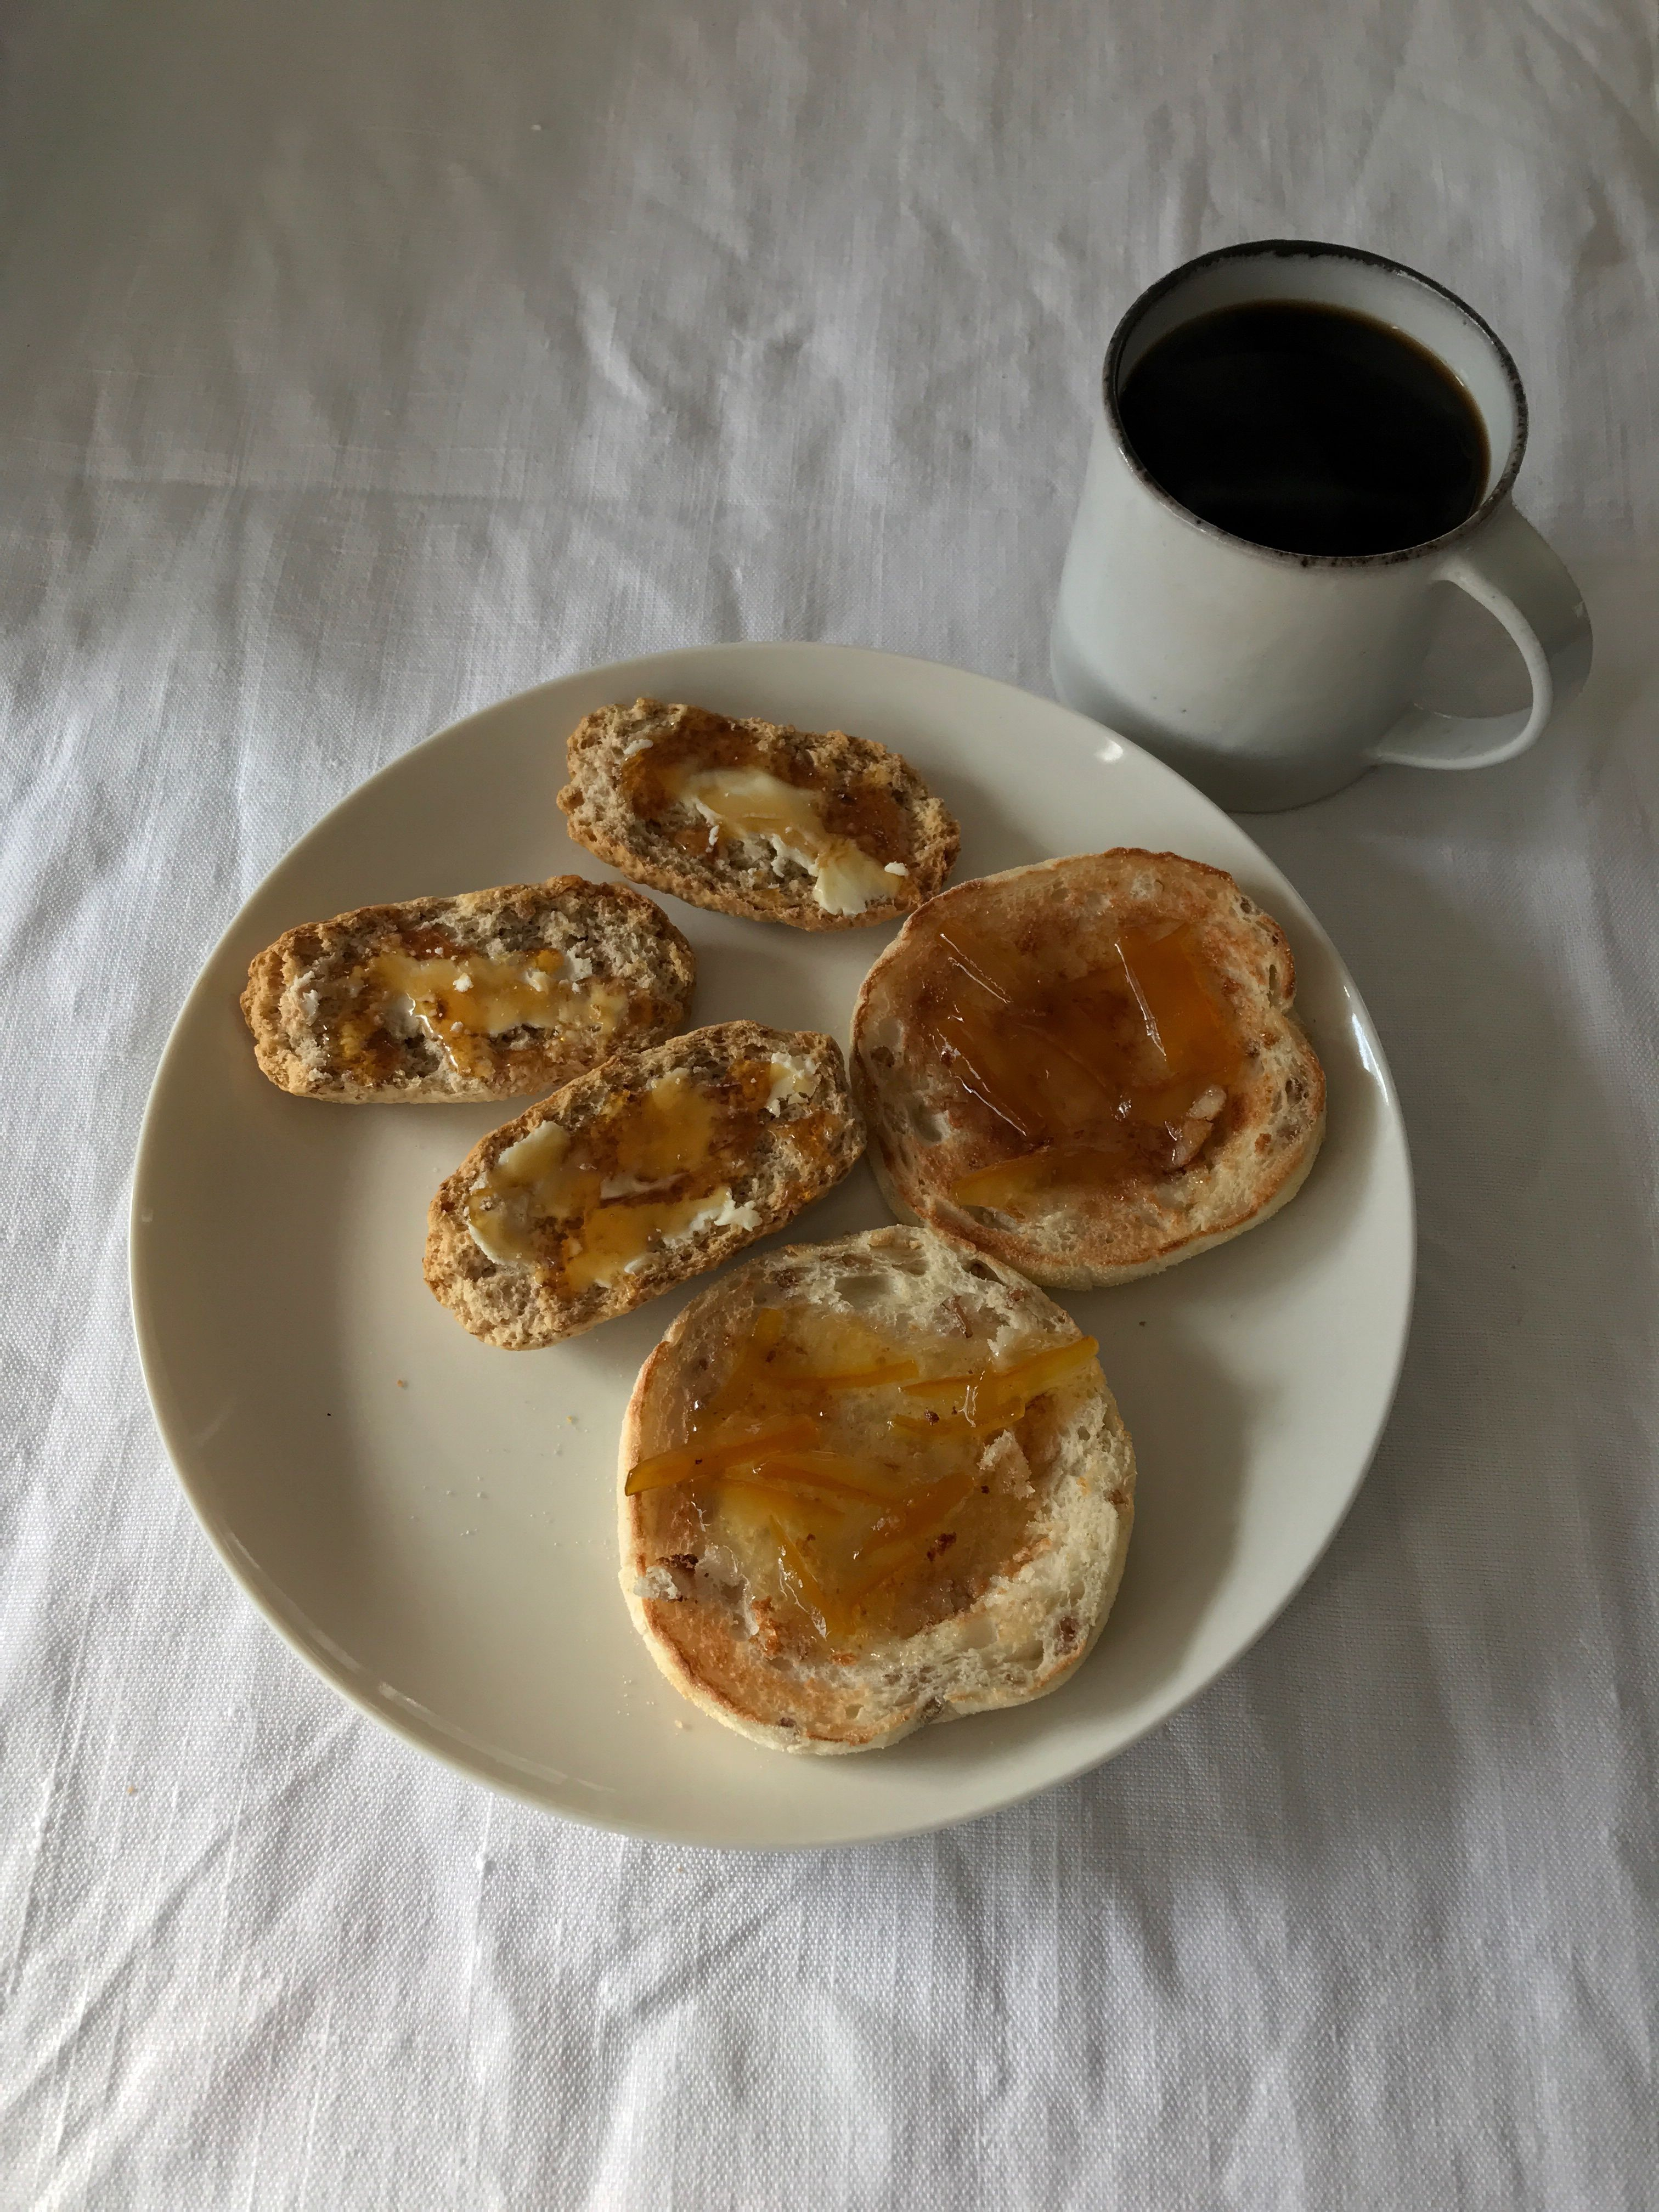 Good morning! ☀ Yuzu jam on muffins and honey butter on